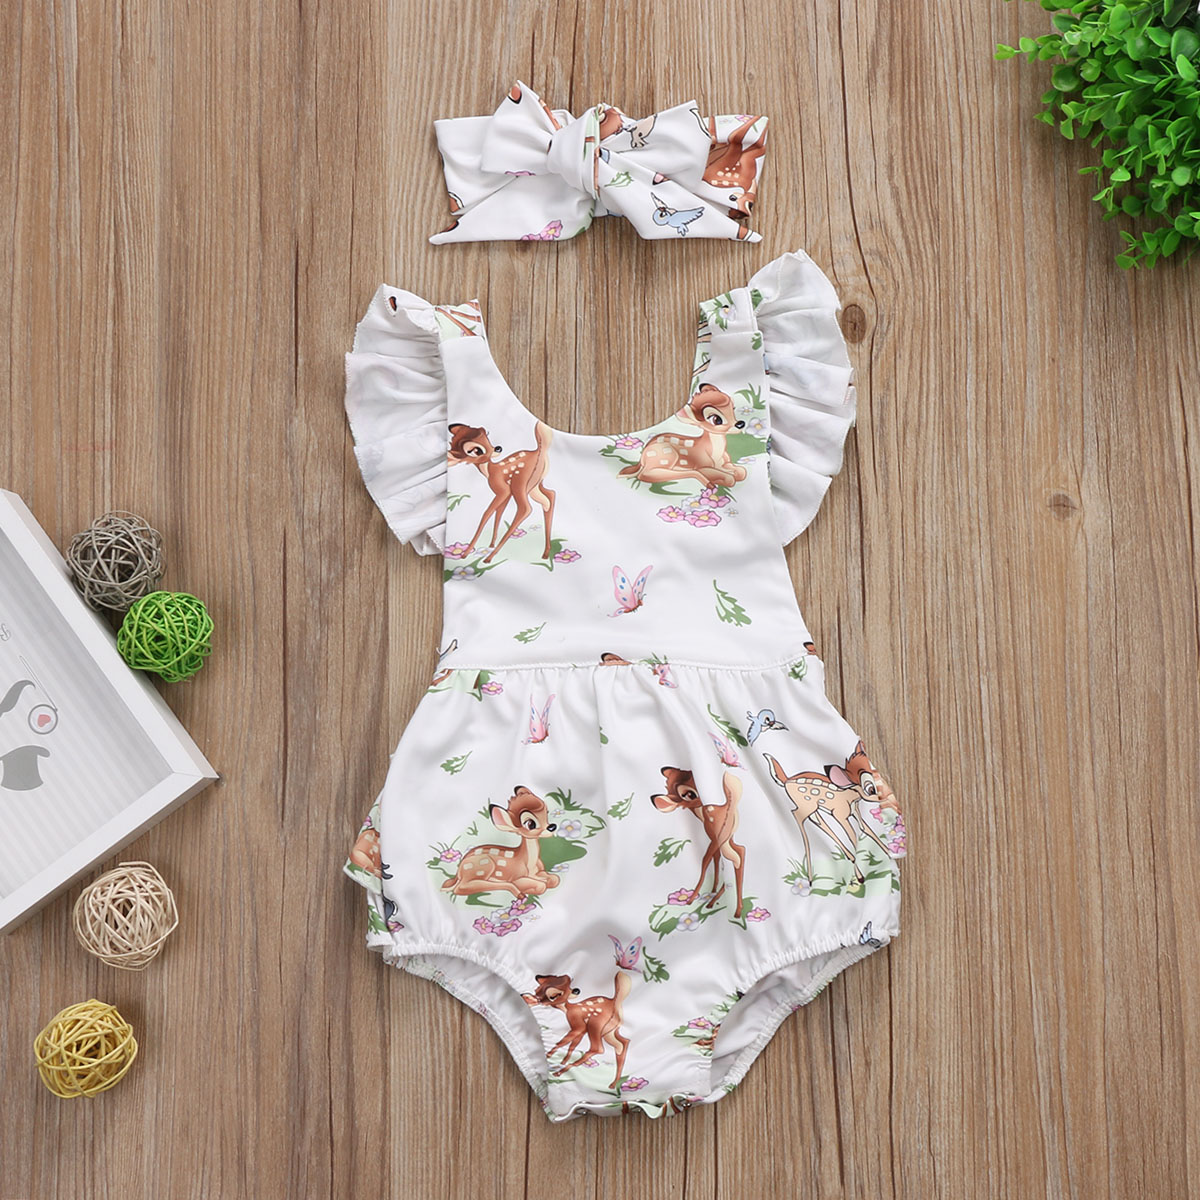 4ab4da774262 Toddler Baby Girls Clothes Summer Flying Sleeveless Floral Fashion ...